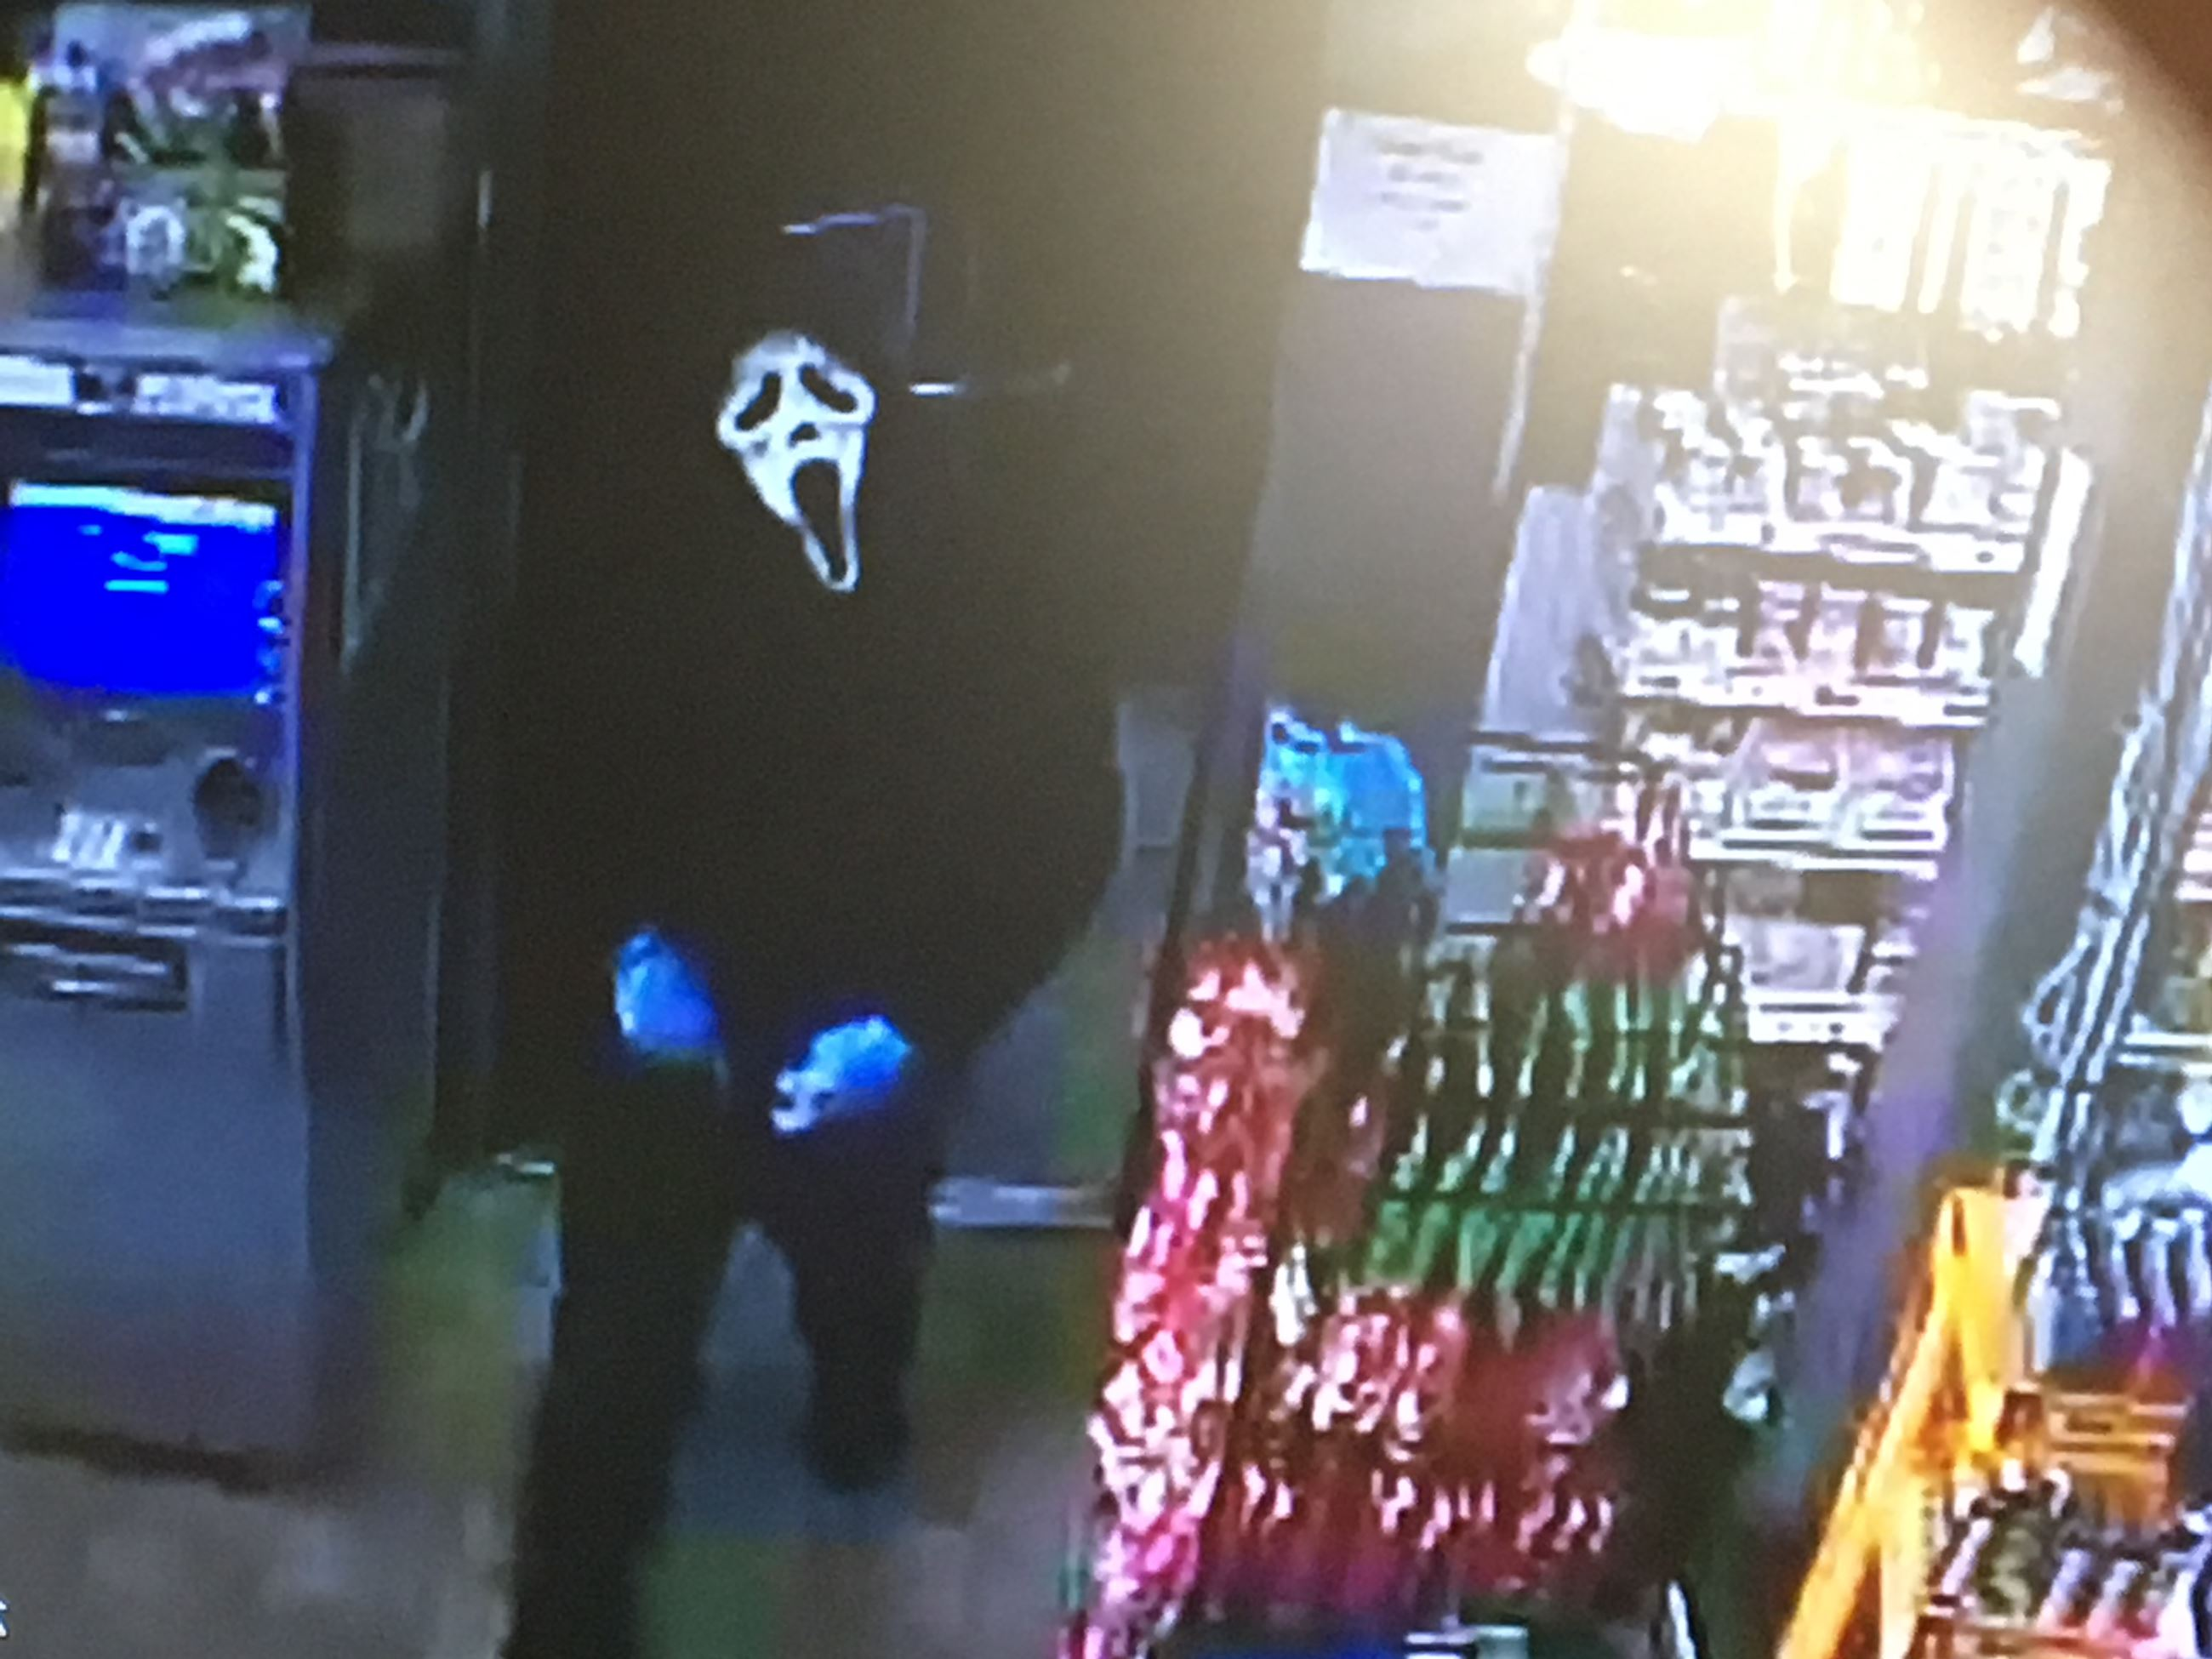 Suspect in 2-12-2019 Raceway Attempted Robbery